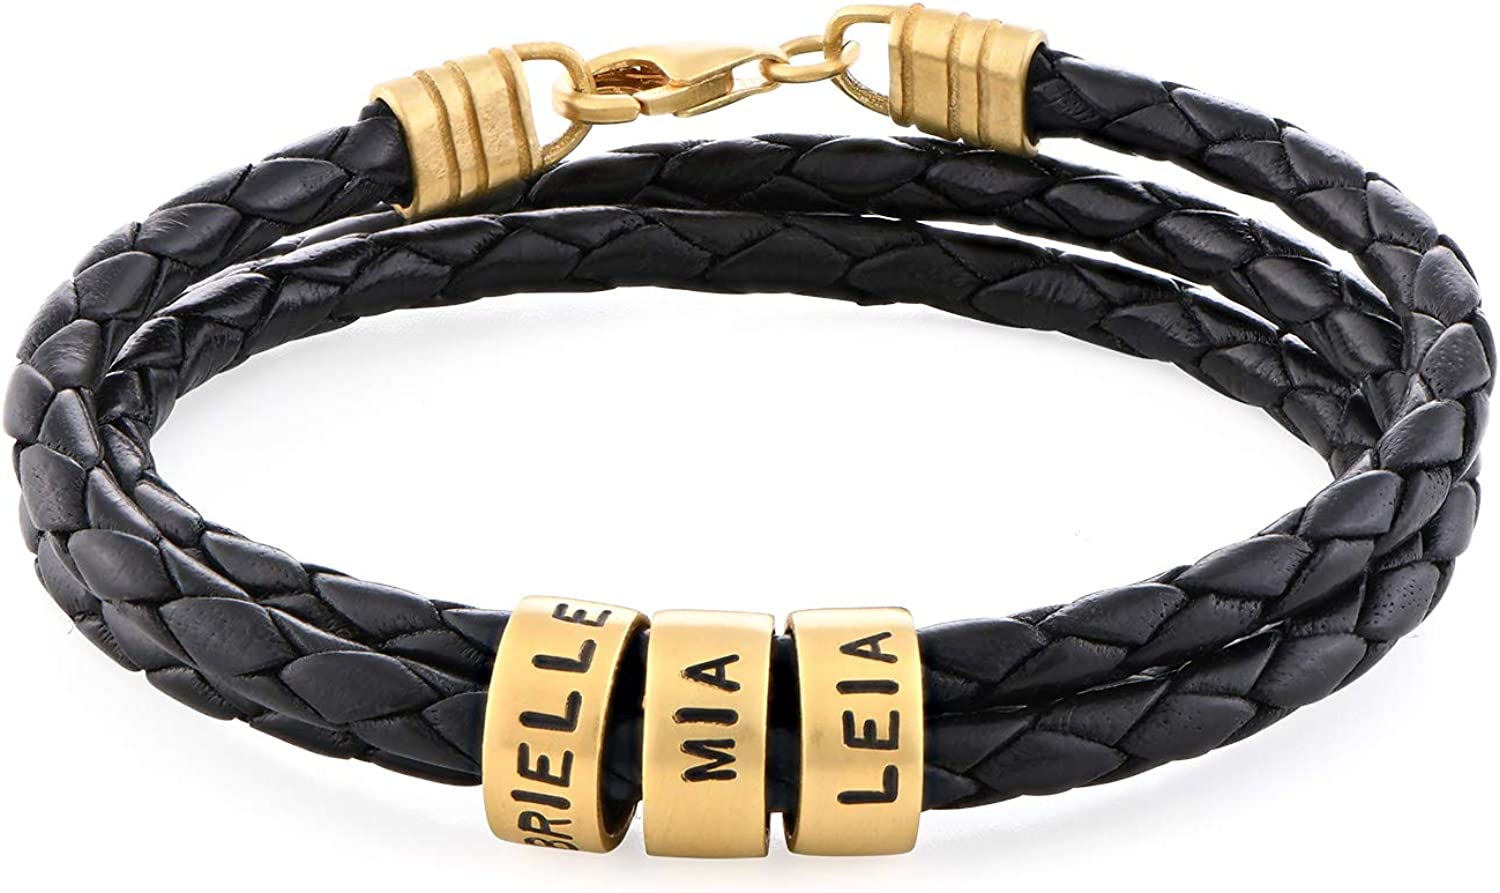 MyNameNecklace Personalized Sterling Silver 925 Men Braid Bracelet with Small Custom Engraved Beads Wax/Leather (Black/Brown)- Father's Day Men- Boyfriend Gift